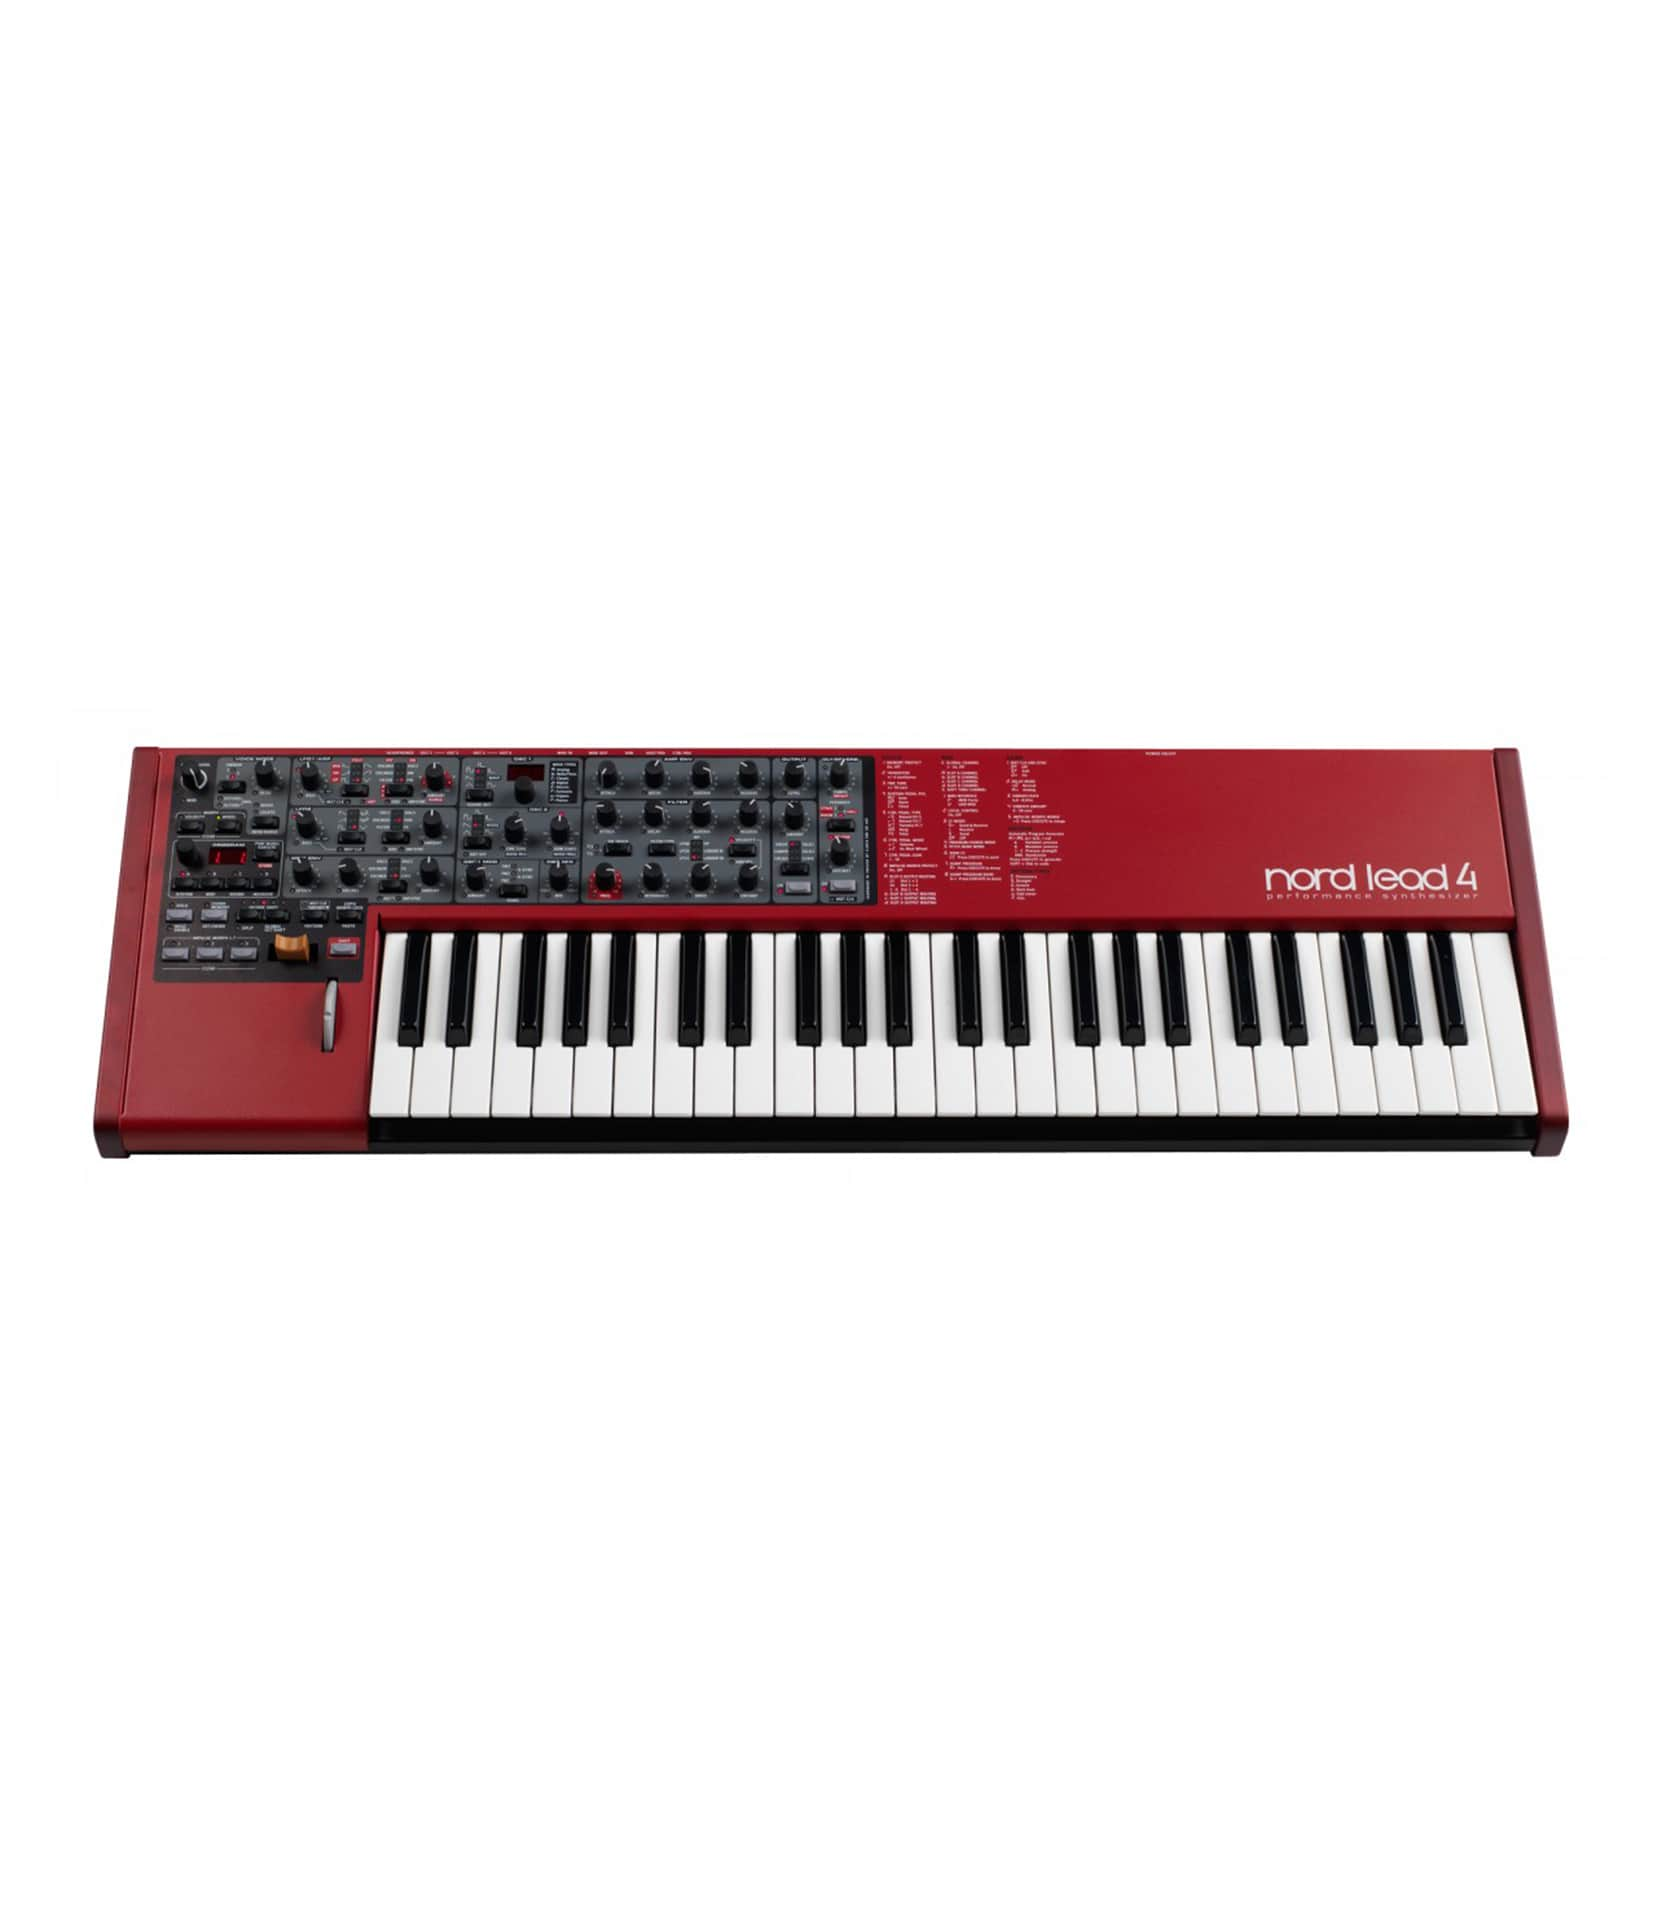 Melody House Musical Instruments Store - Lead 4 Performance Synthesizer